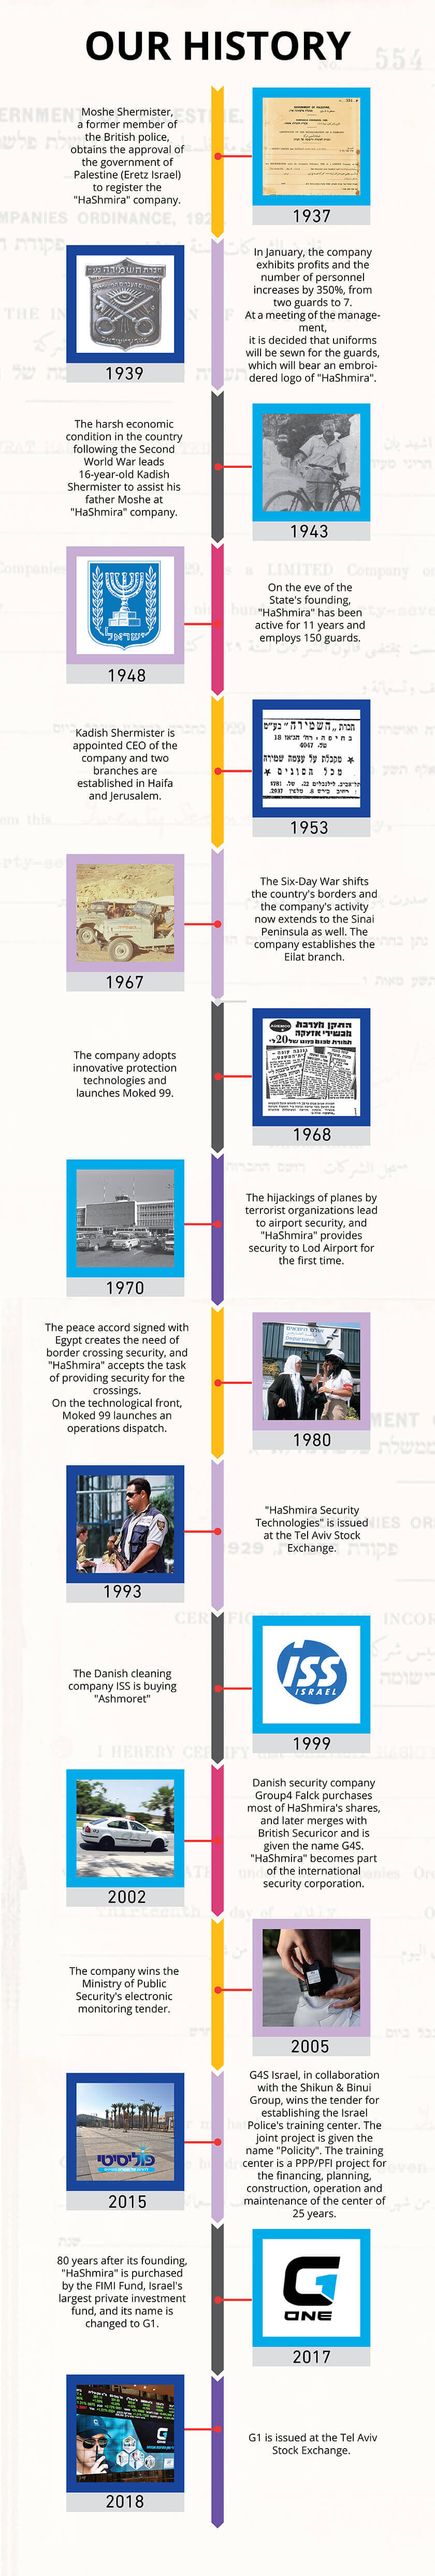 G1 - the history since 1931 till today